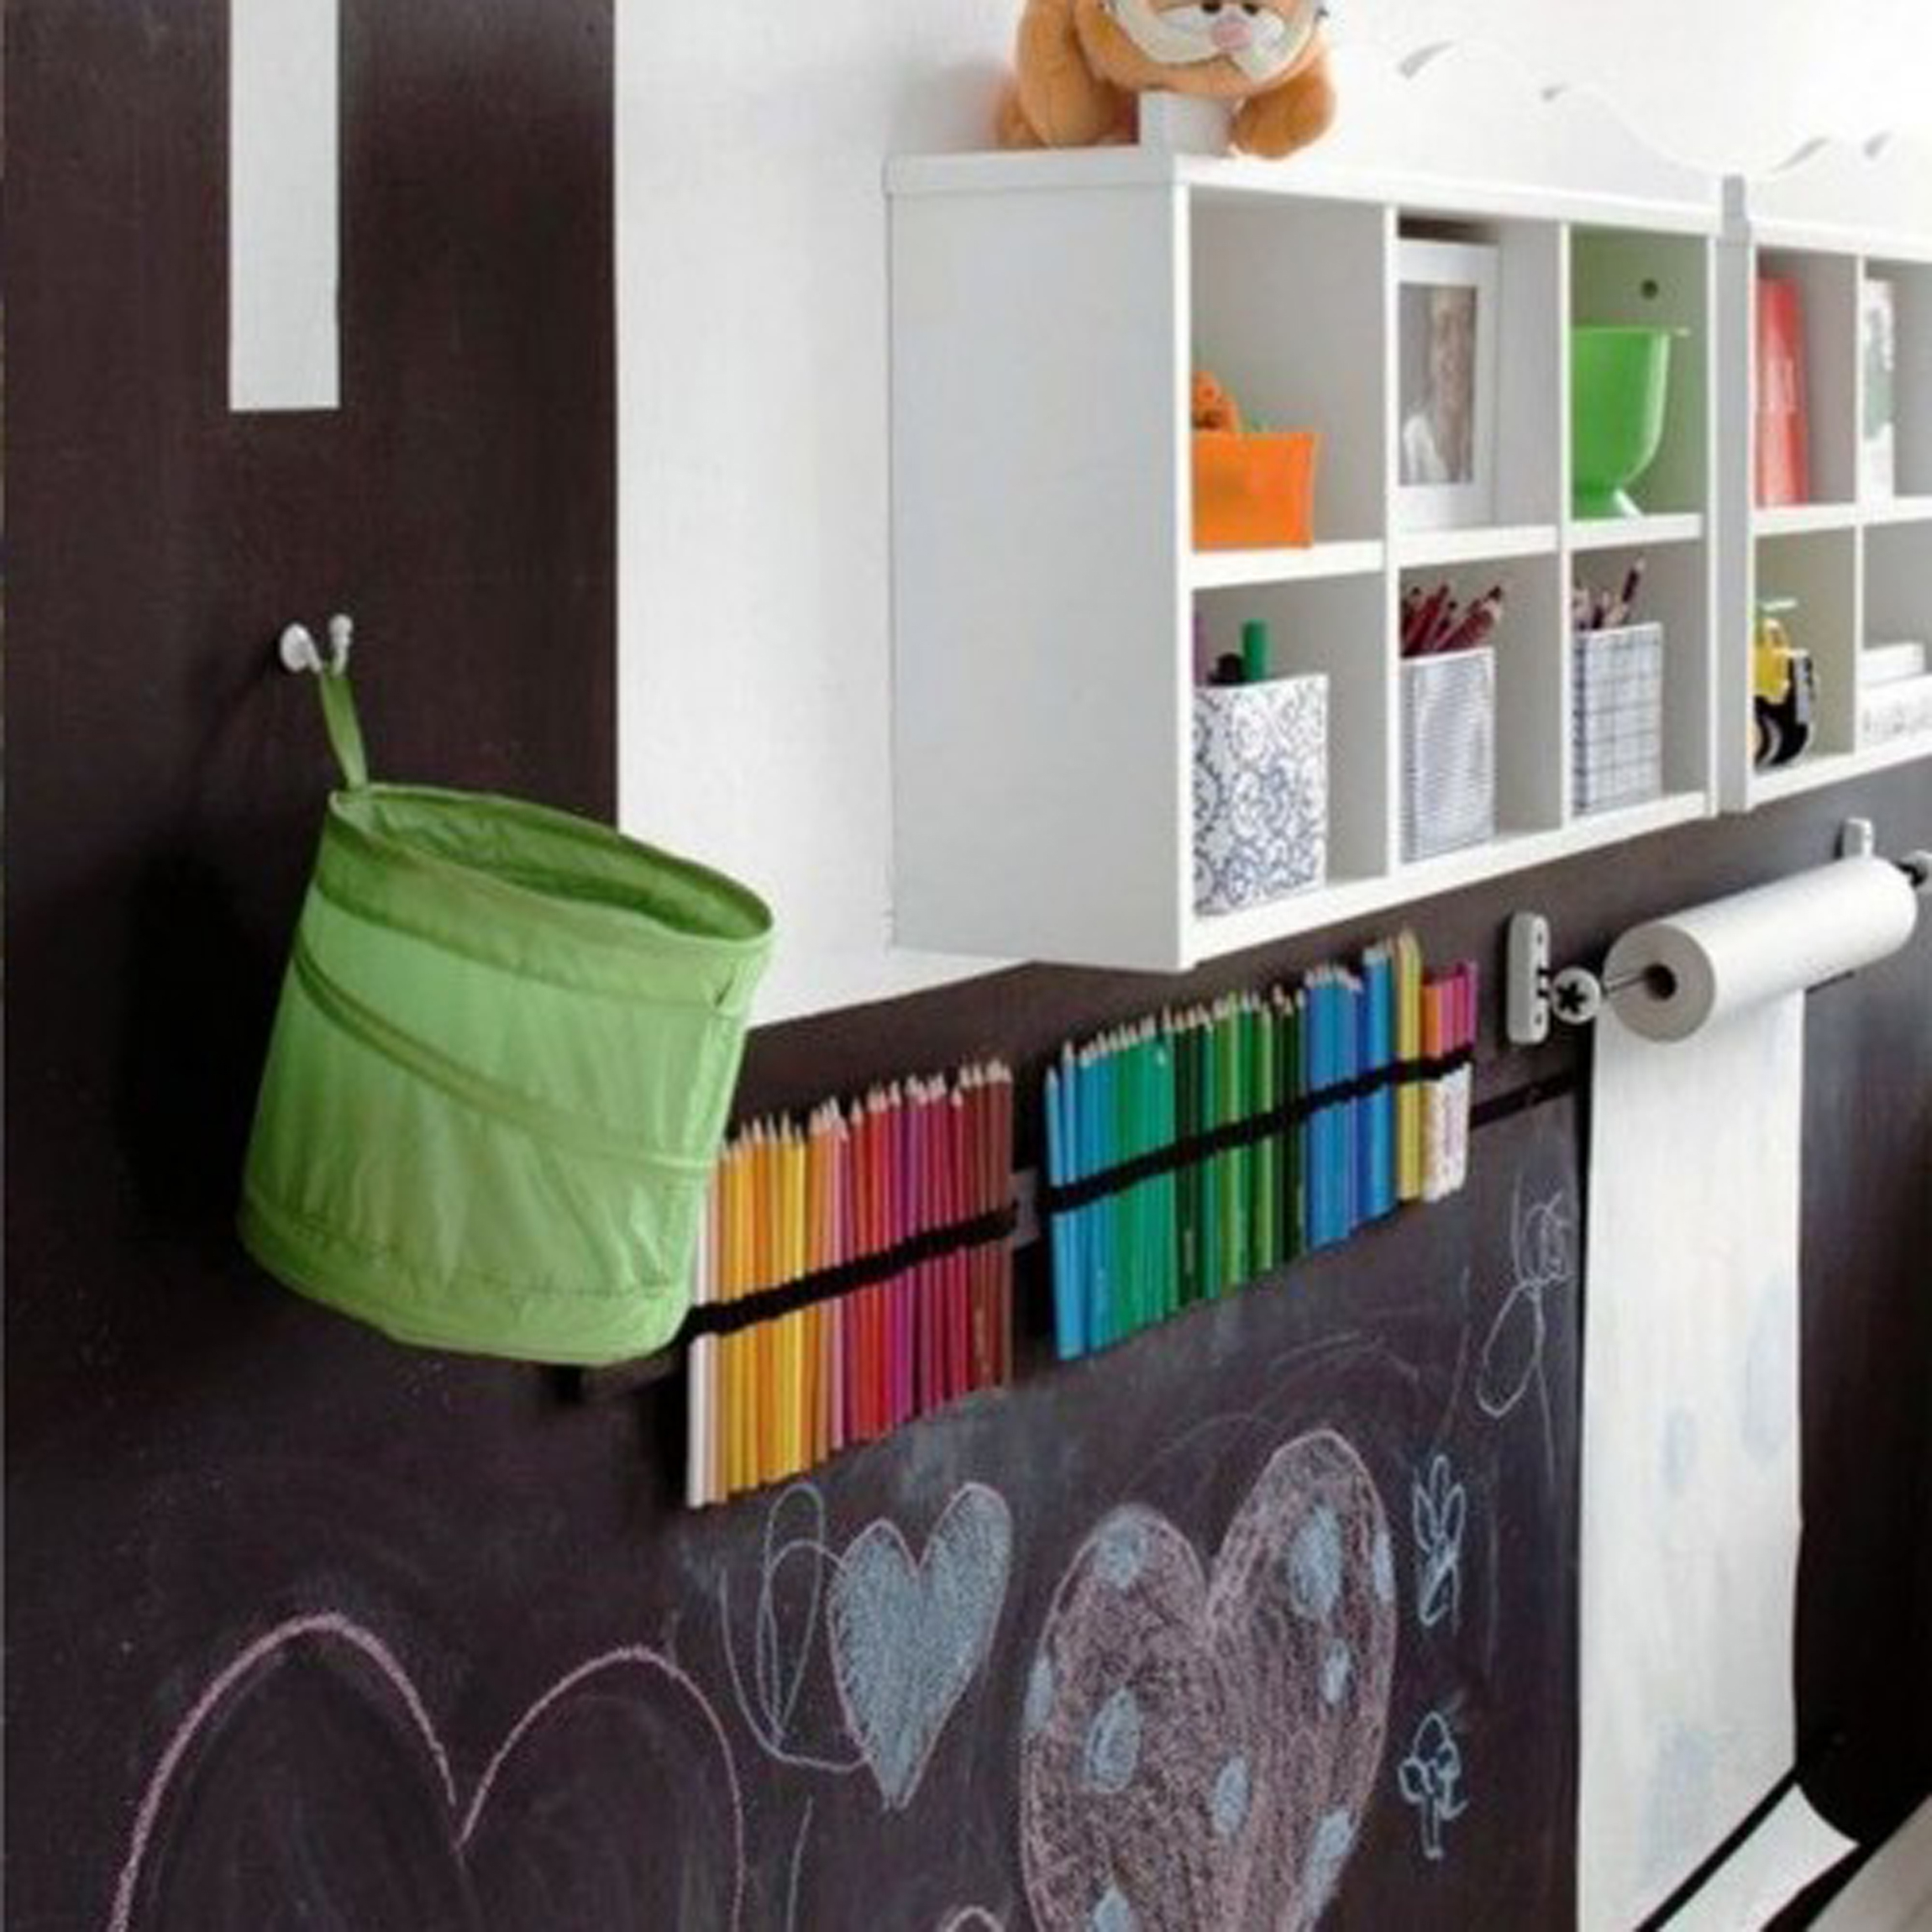 Kids Room Decor With Unique Chalkboard Decoration And Pretty Wall Mounted Shelves Design For Saving Toys And Books Plus Agreeable Paper Roll For Kids Drawing Workspace (View 14 of 28)